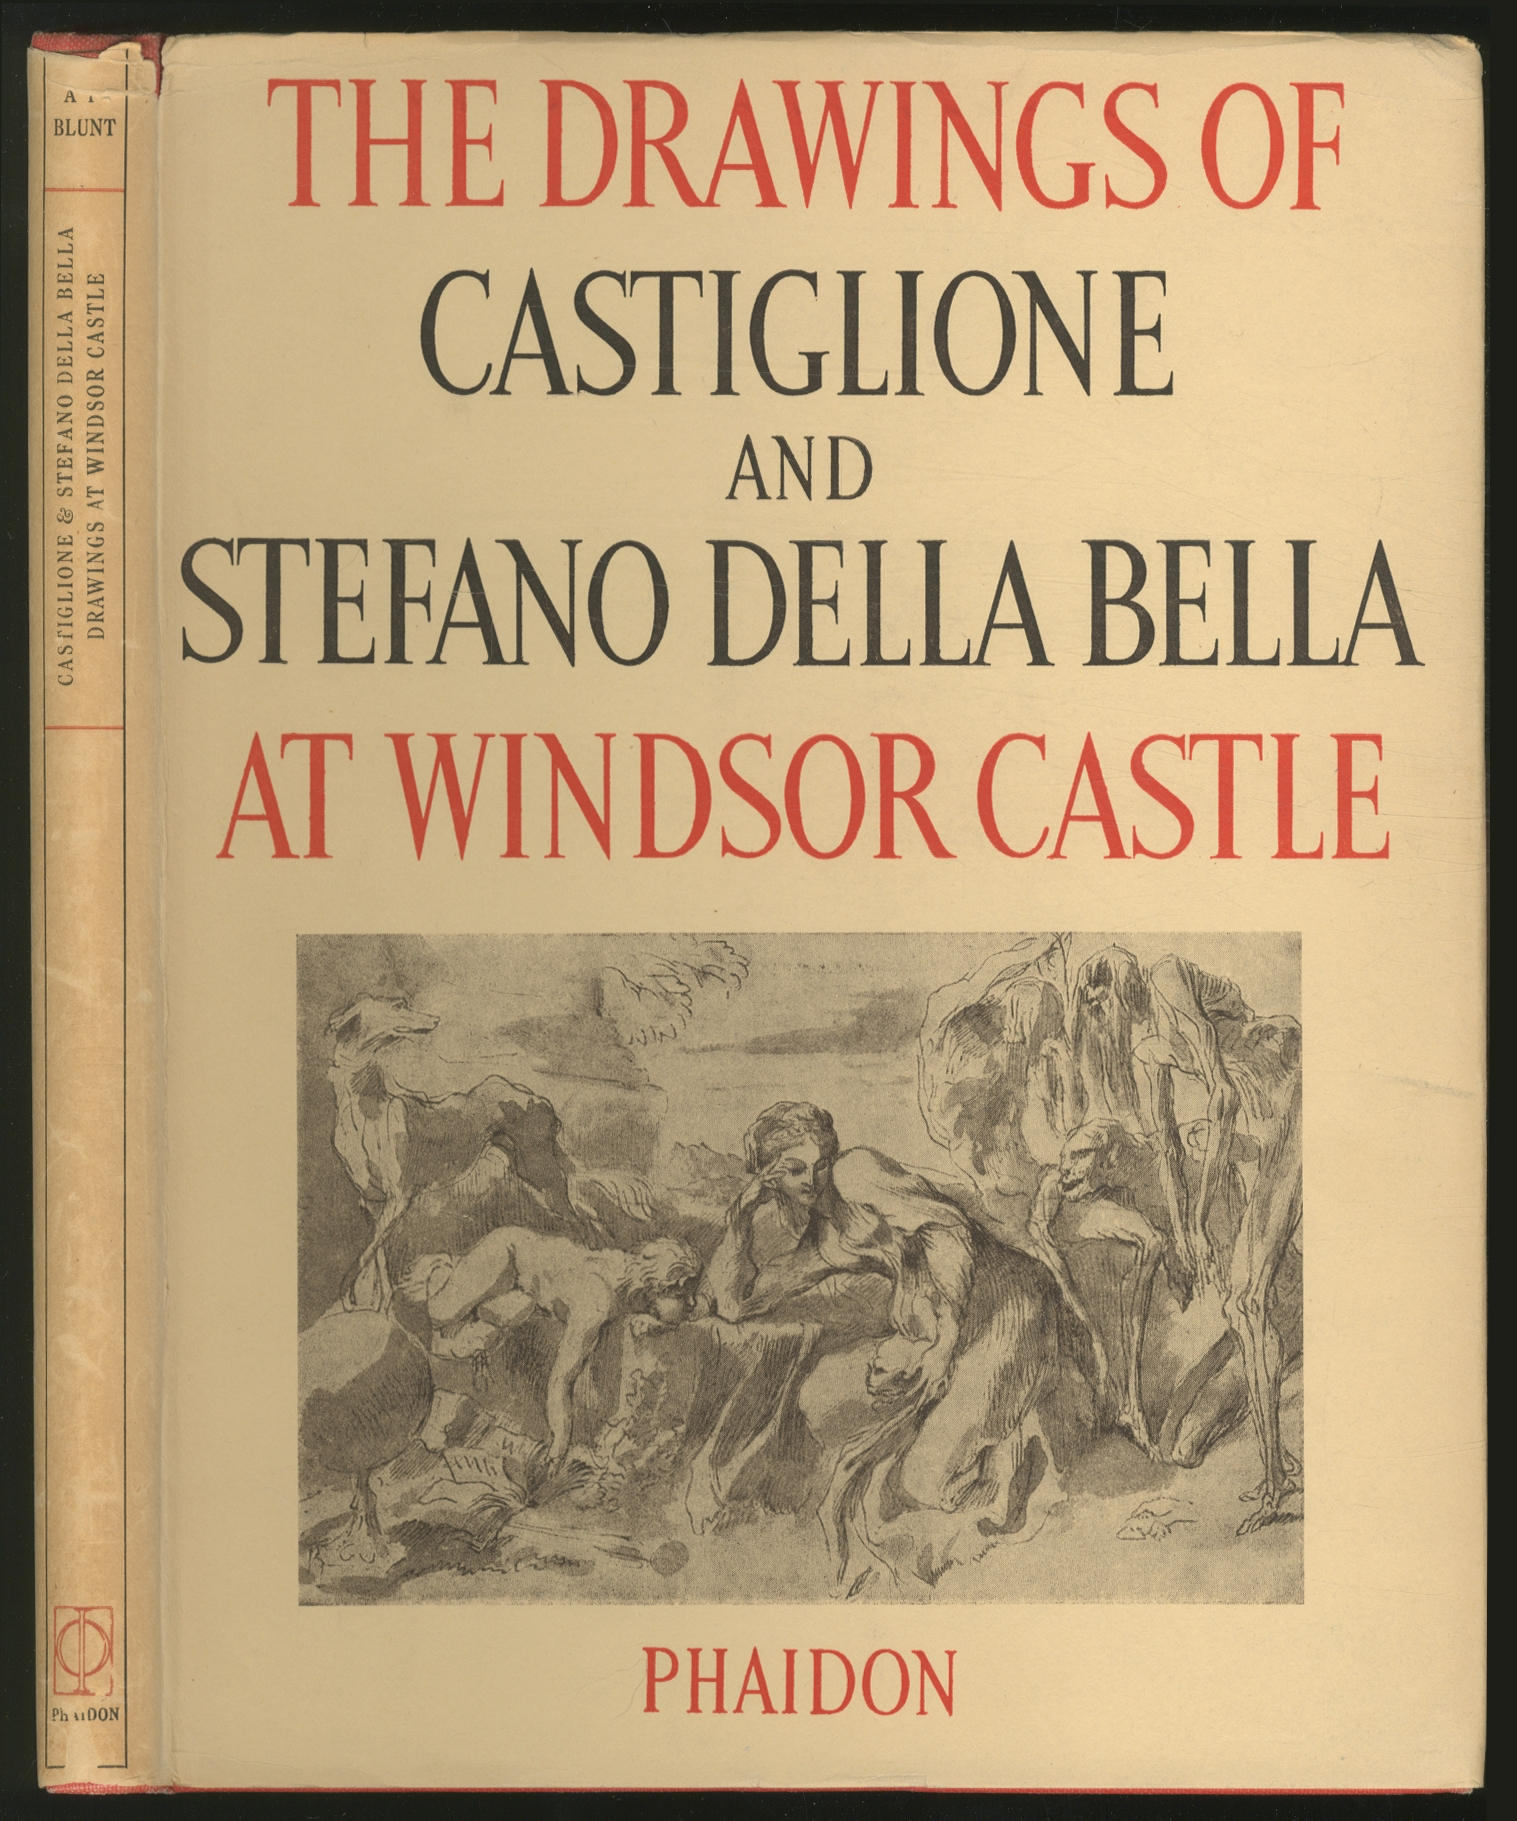 The Drawings of G.B. Castiglione & Stefano Della Bella in the Collection of Her Majesty the Queen at Windsor Castle BLUNT, Anthony Fine